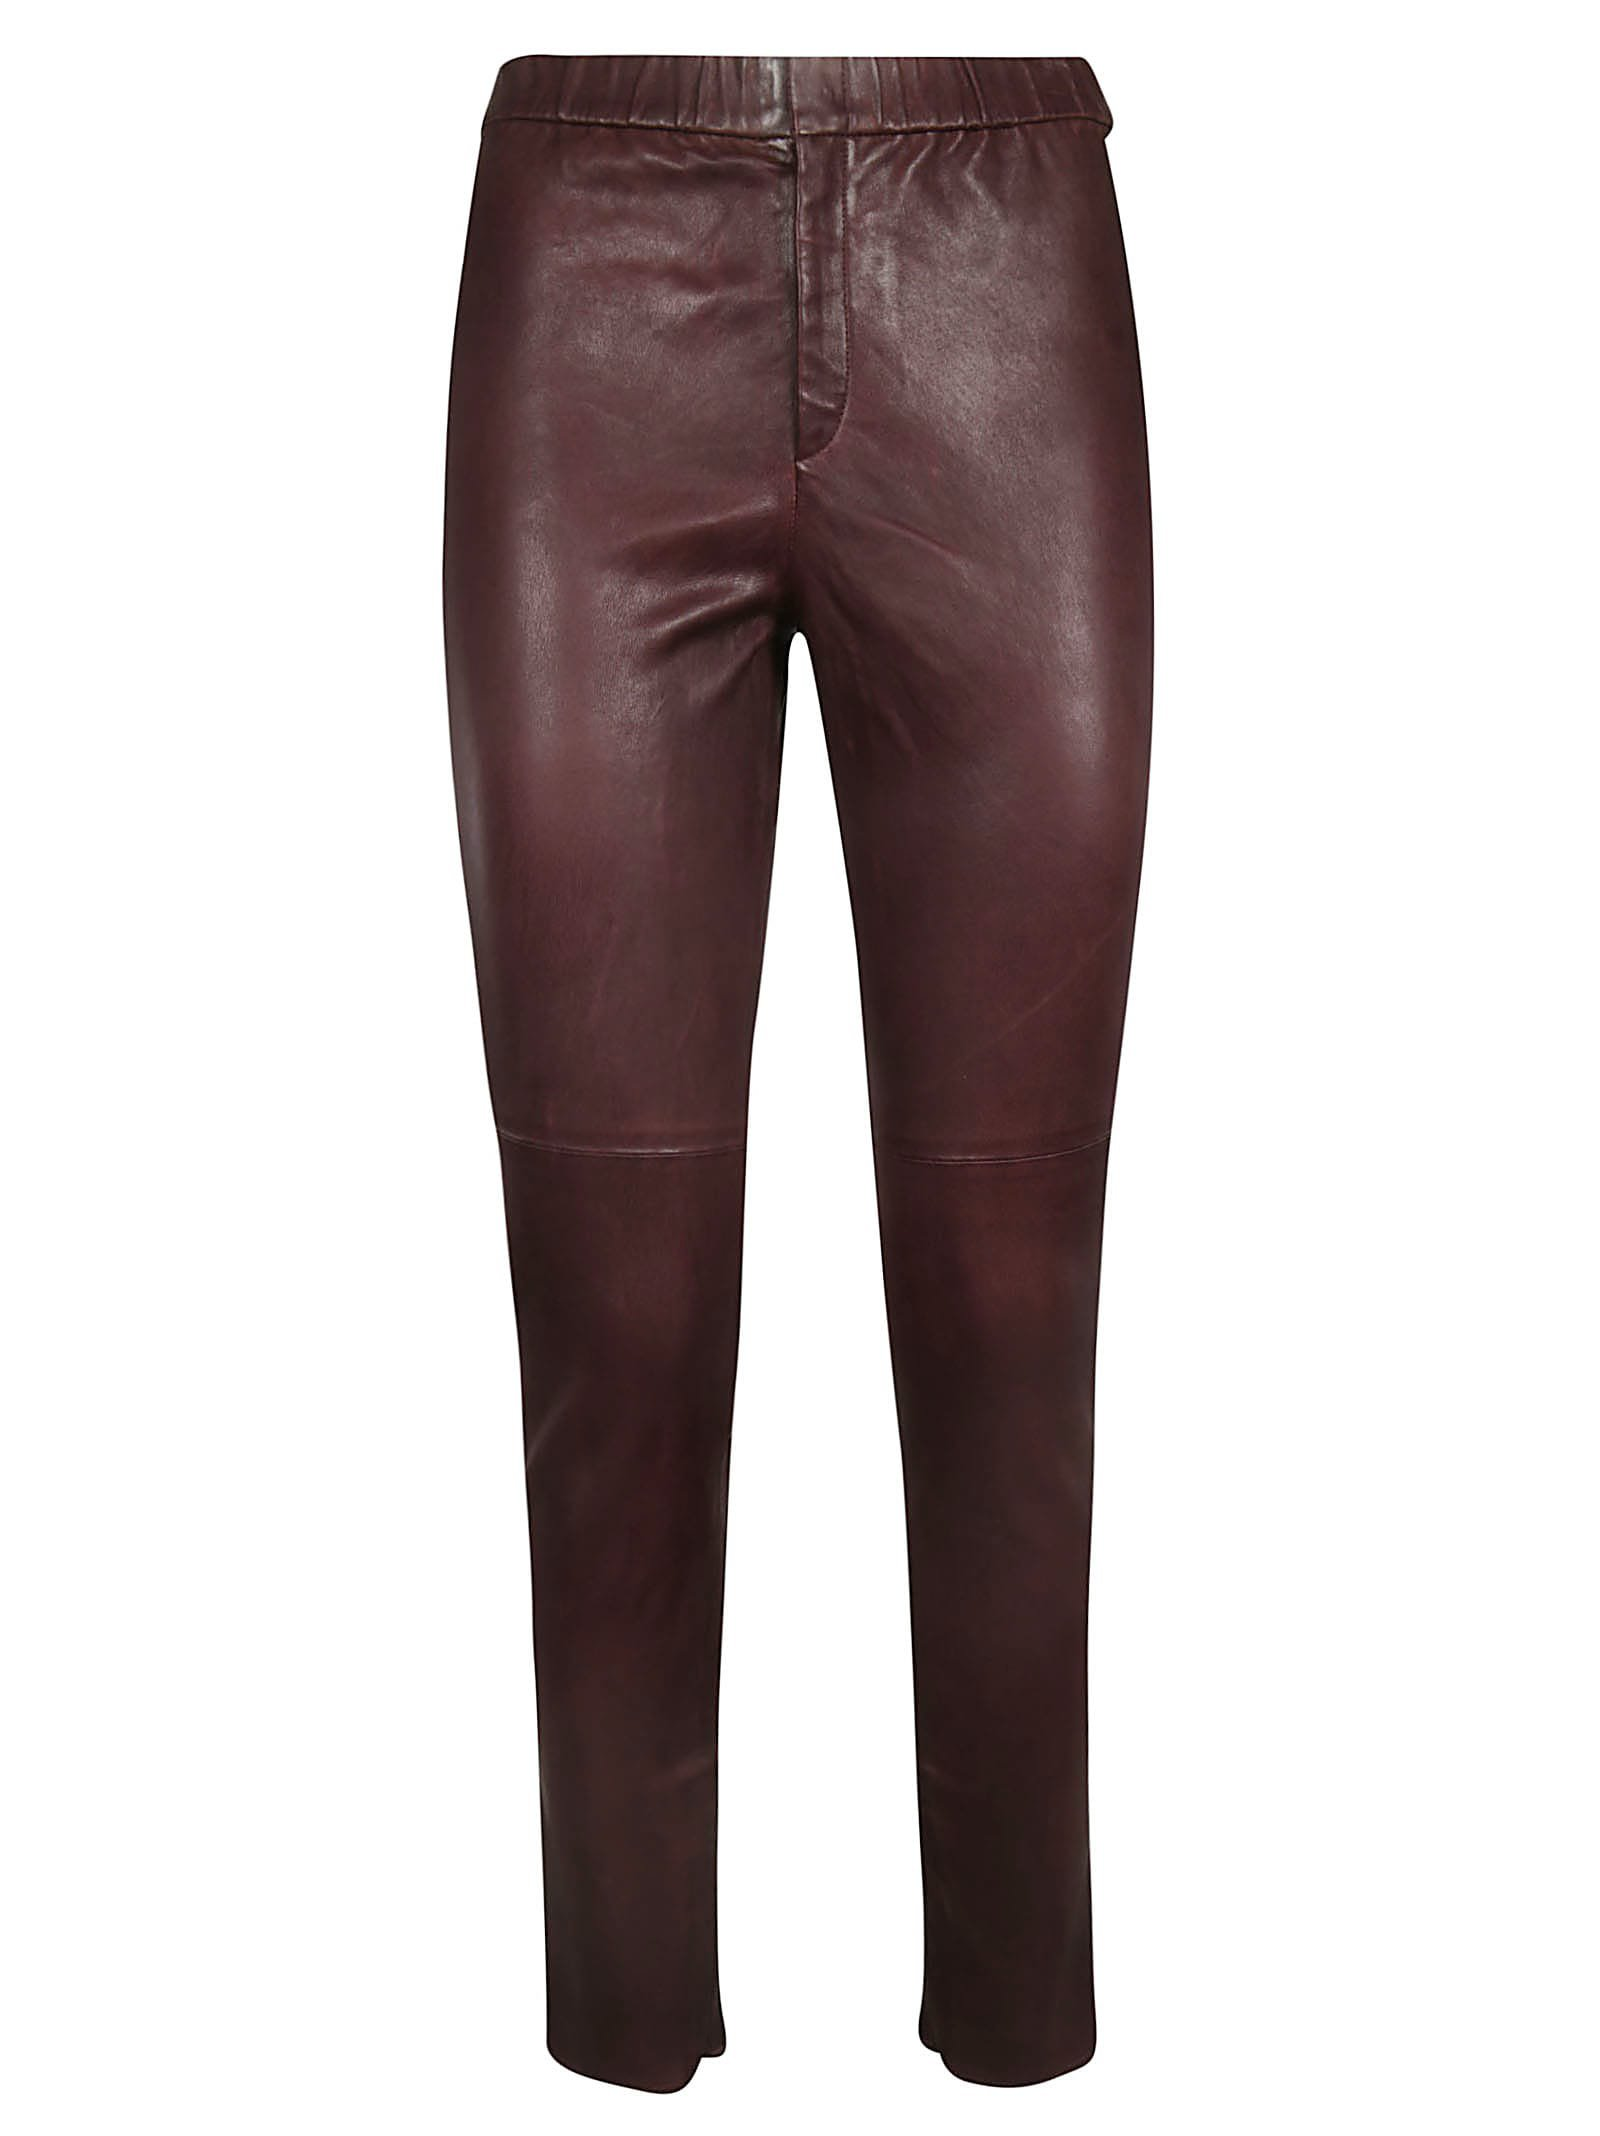 Isabel Marant Iany Trousers